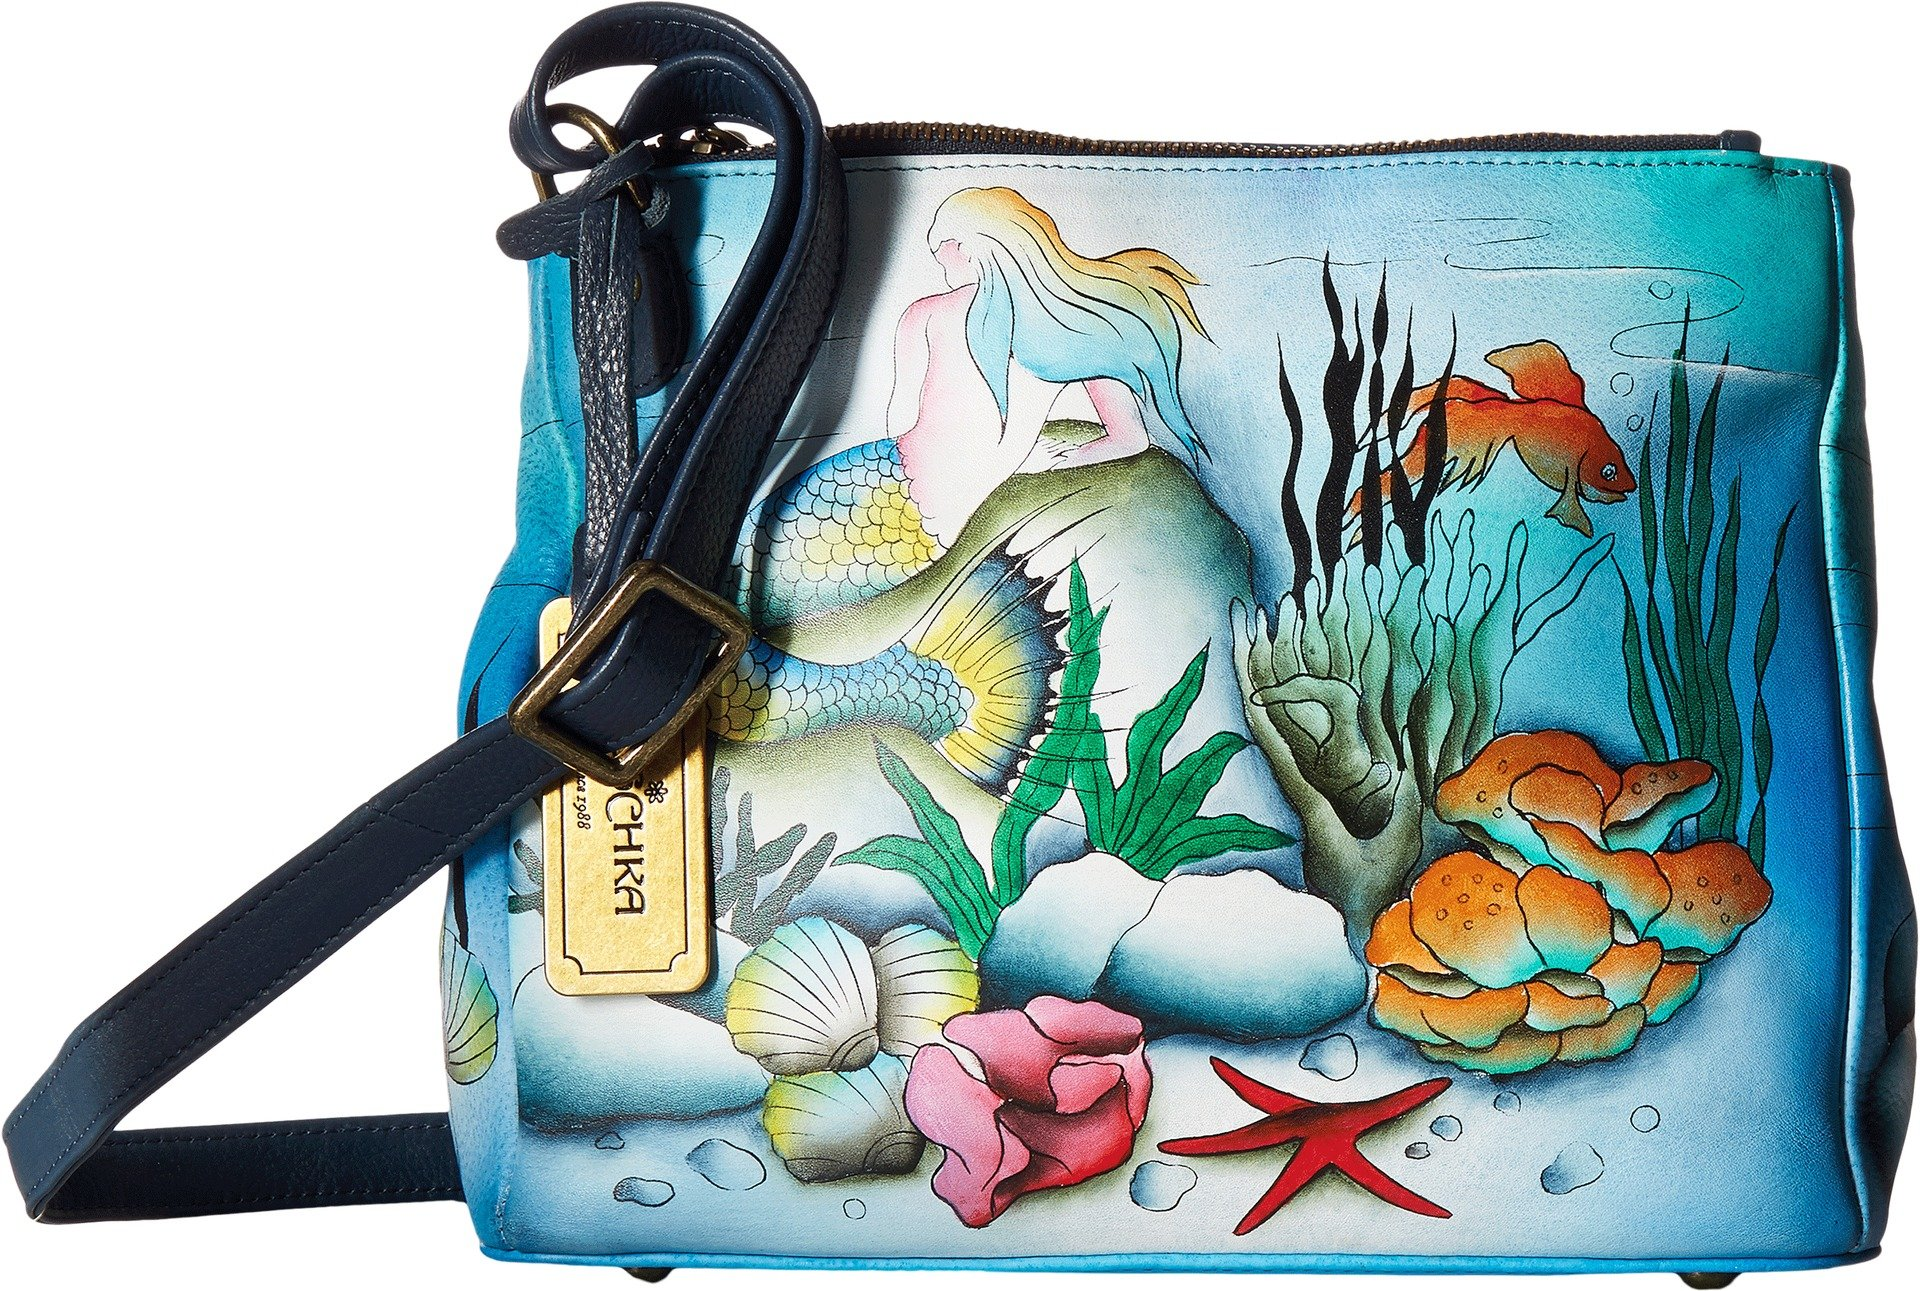 Anuschka Handbags Women's 525 Triple Compartment Convertible Tote Little Mermaid Crossbody Bag